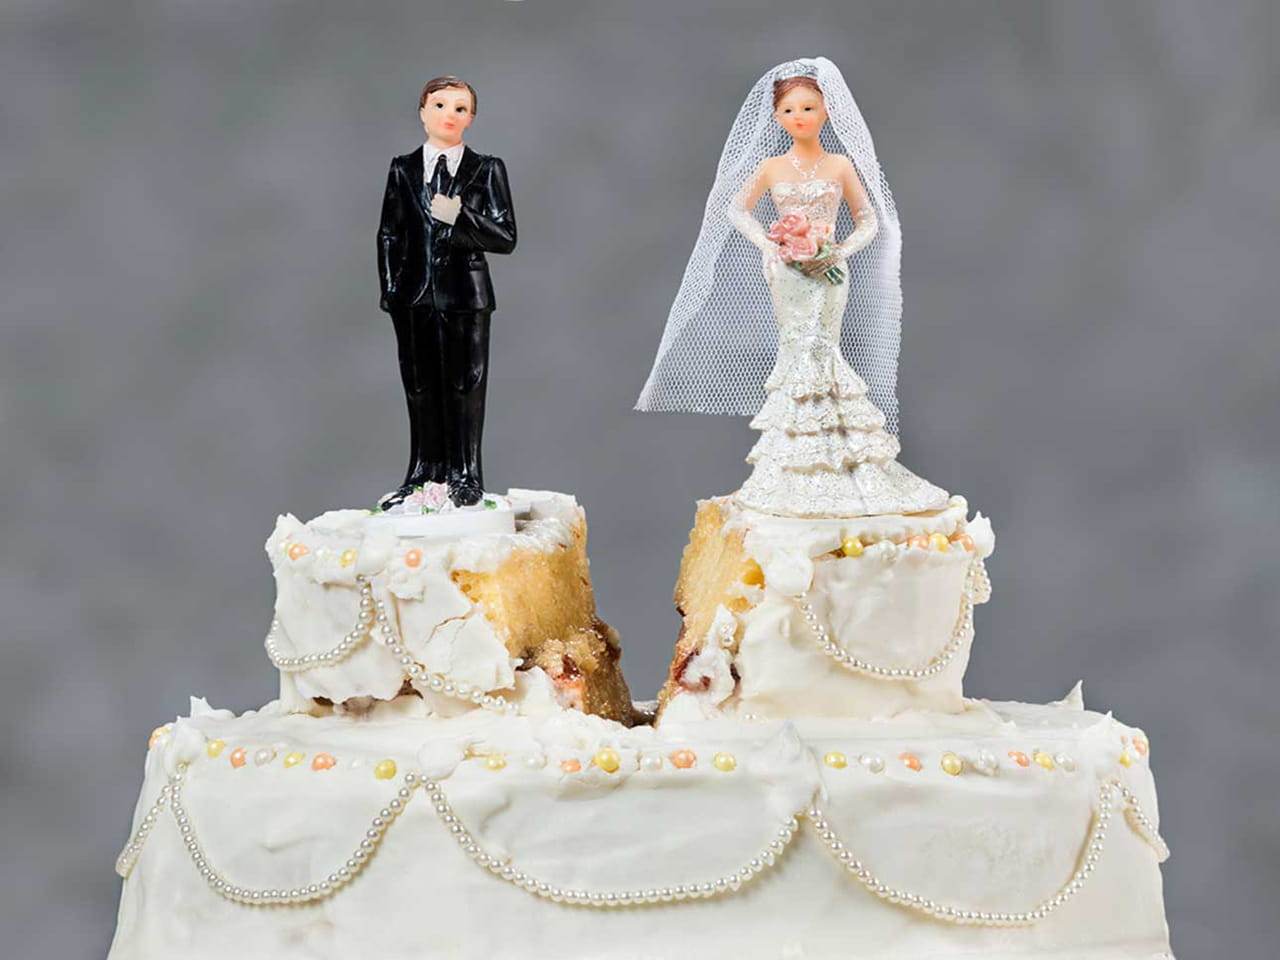 Wedding cake with bride and groom separated